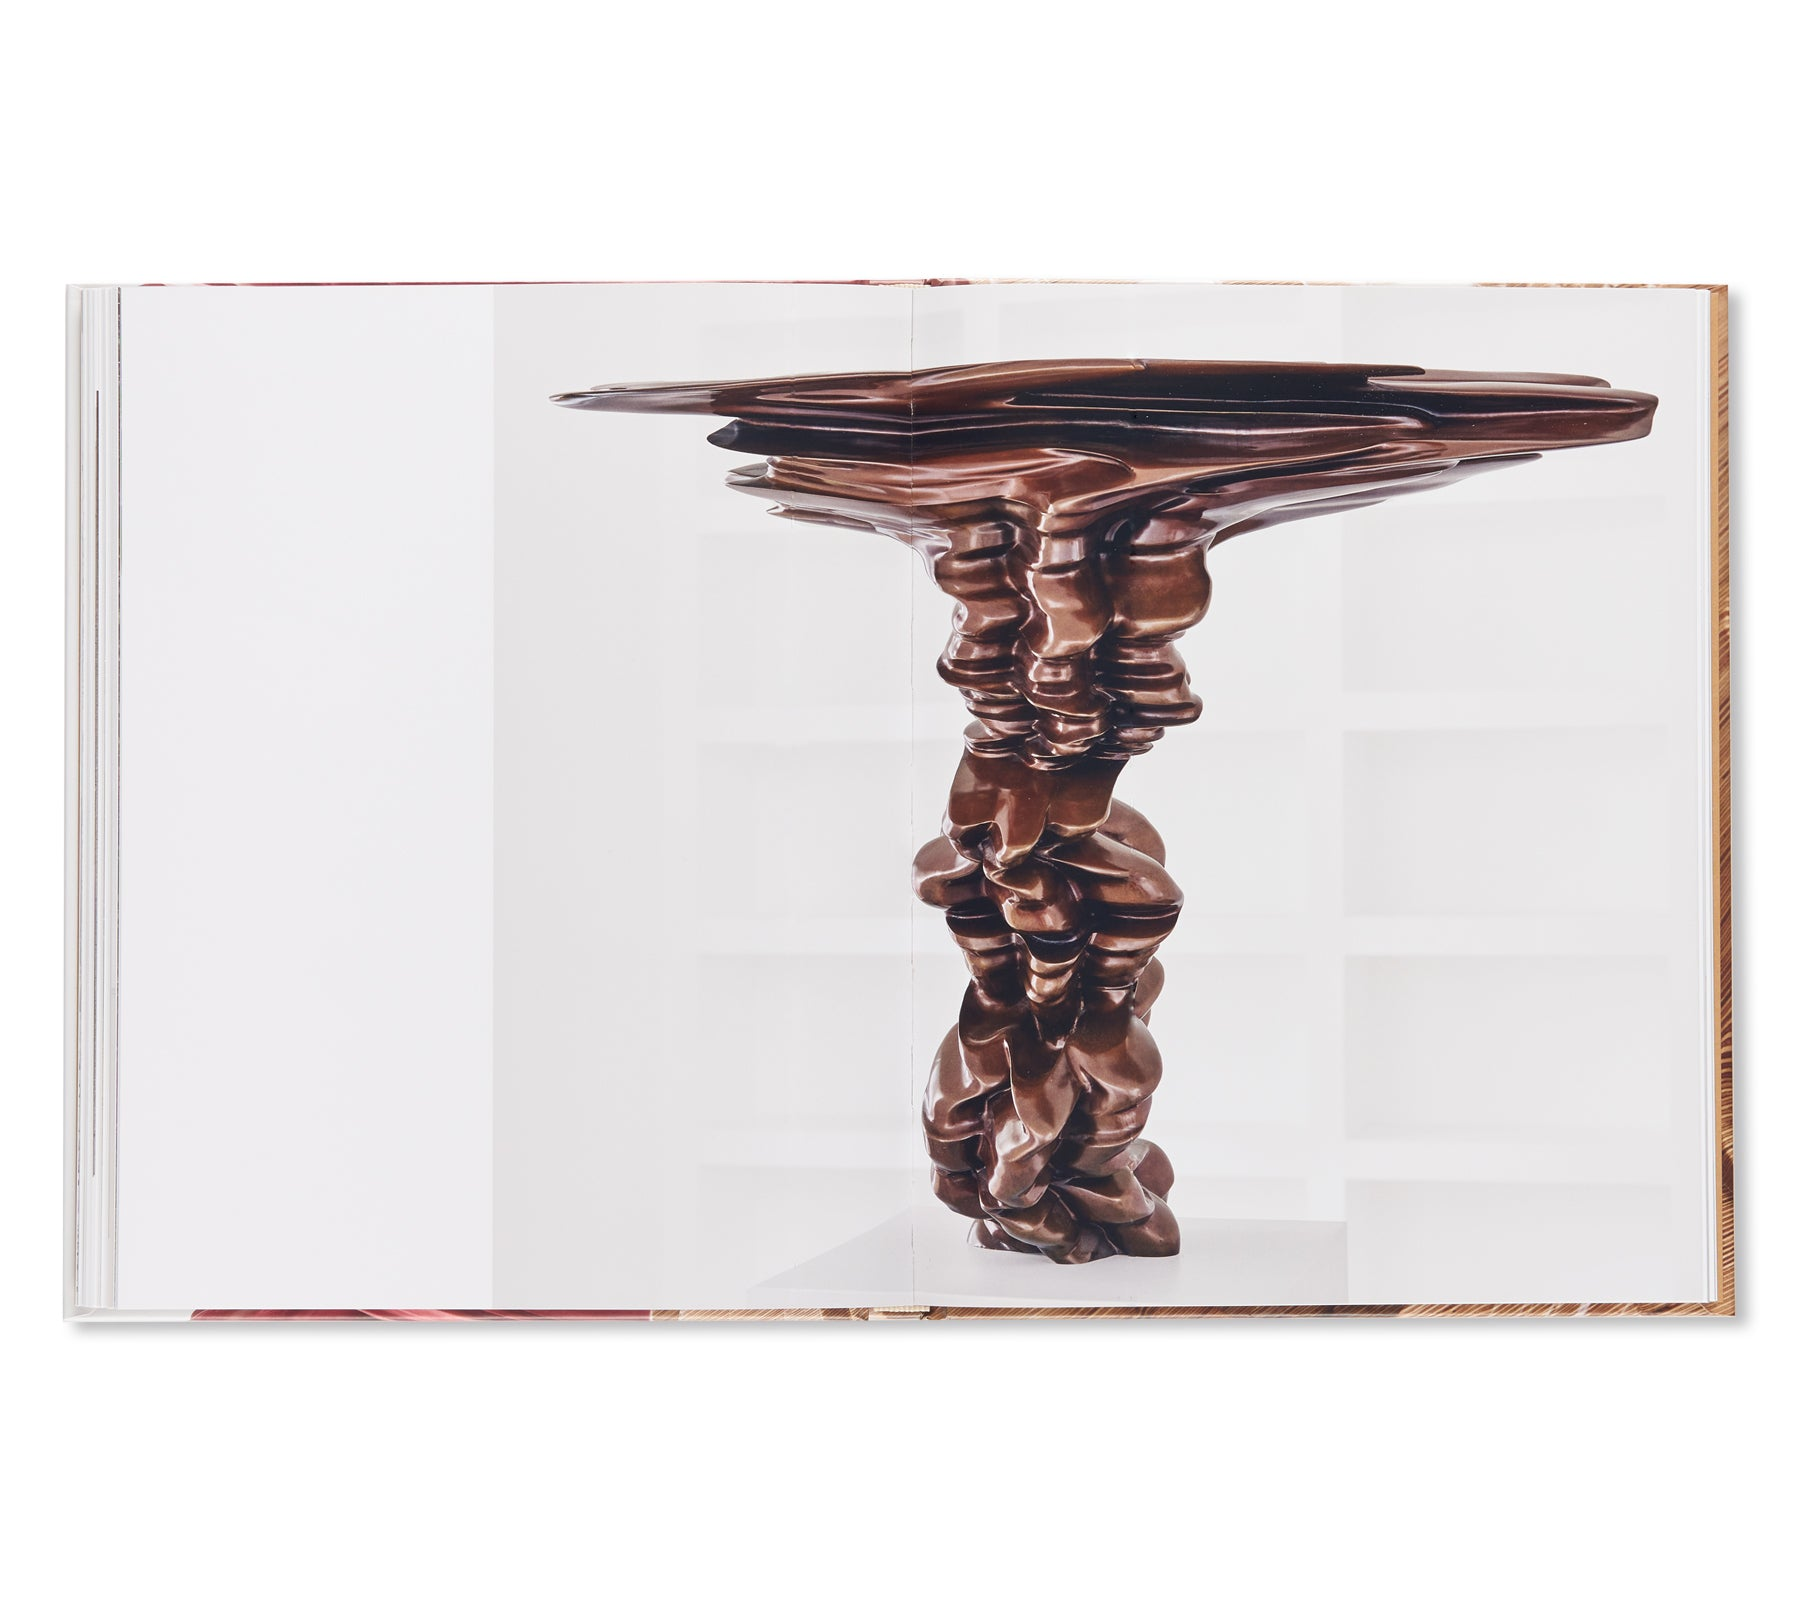 STACKS by Tony Cragg